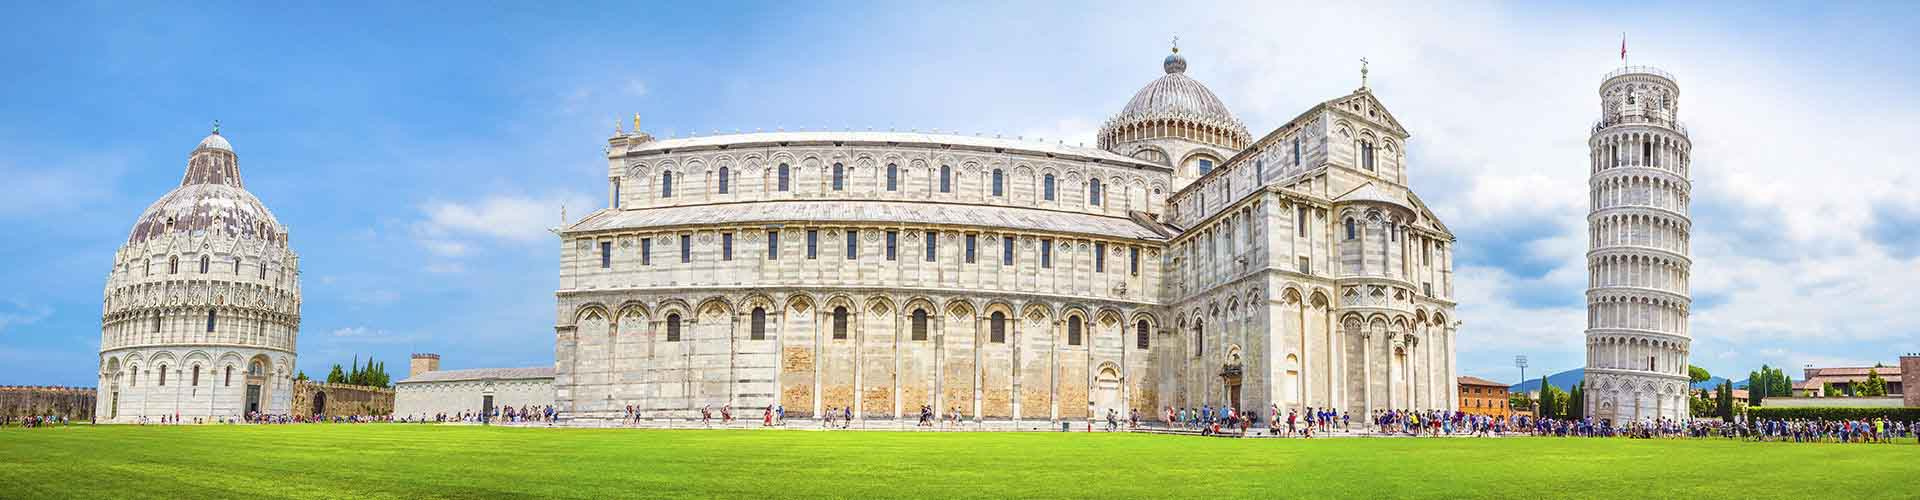 Pisa – Hostels in Pisa. Maps for Pisa, Photos and Reviews for each hostel in Pisa.